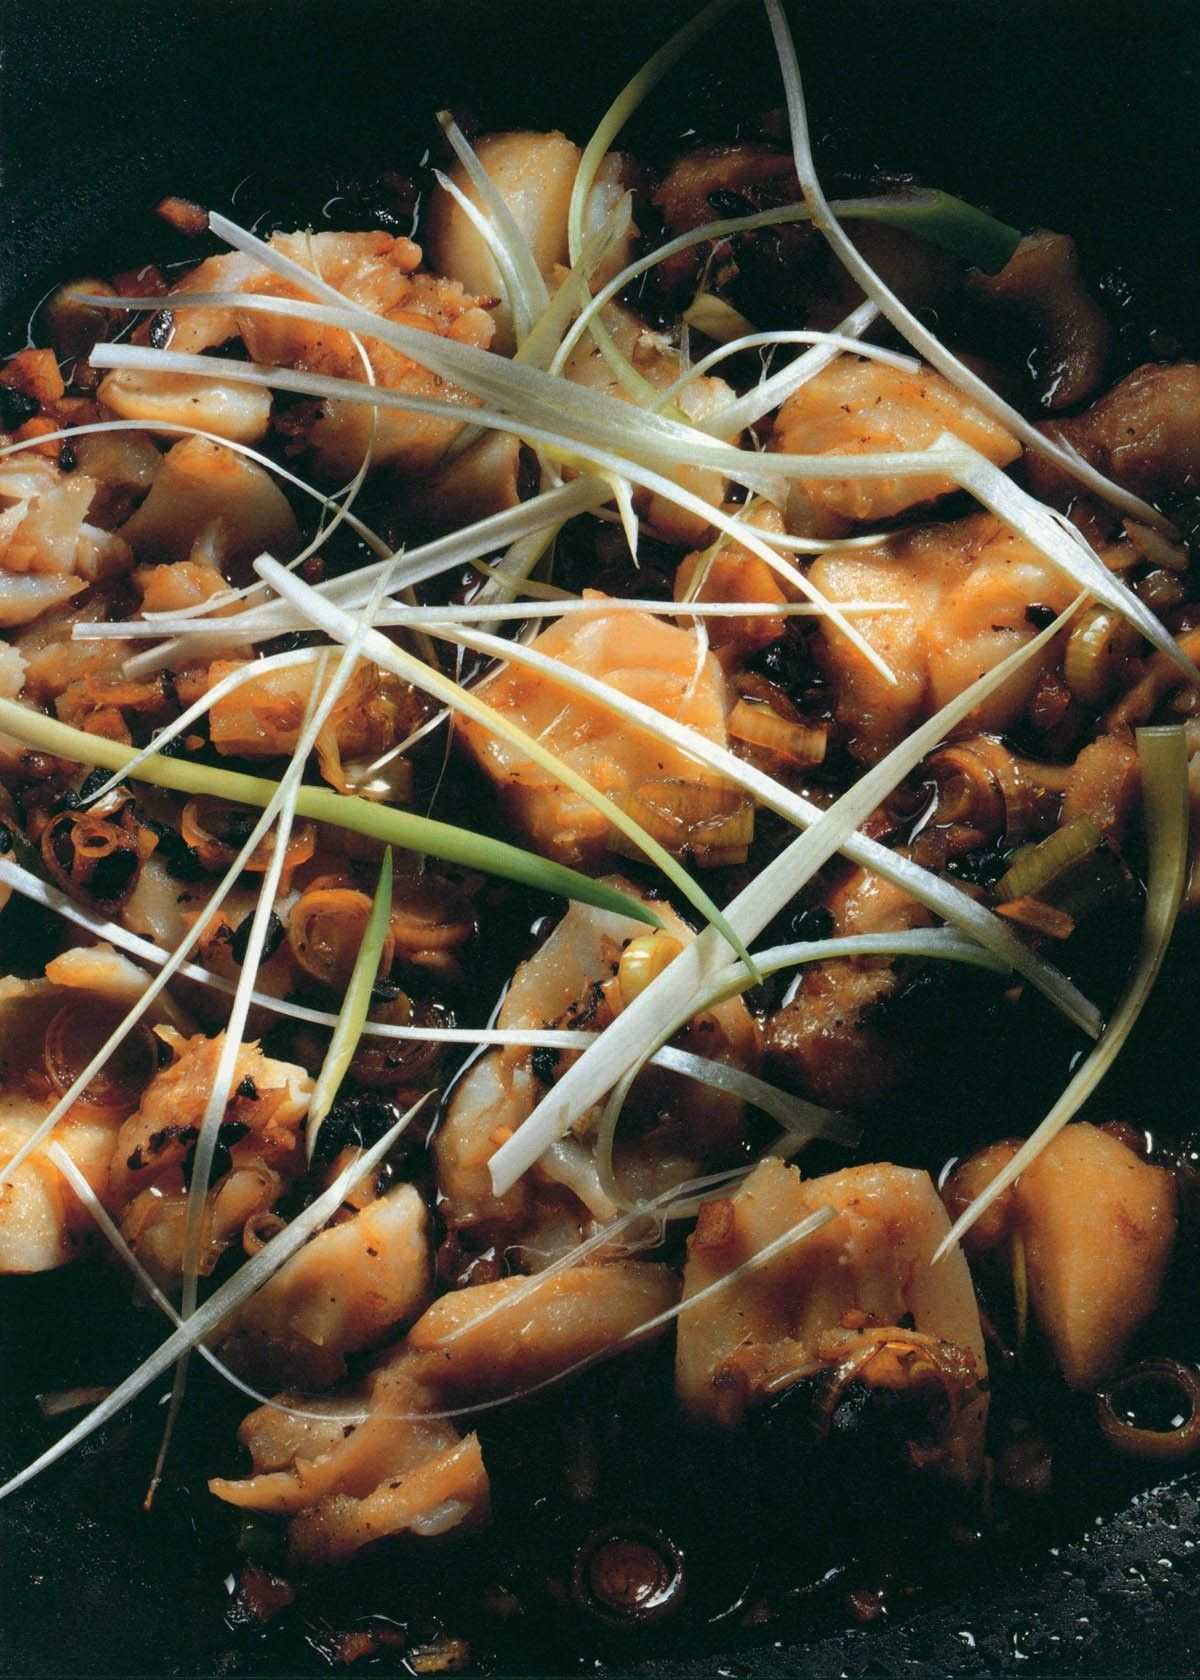 Stir Fried Fish With Black Bean Sauce From Ken Hom S Hot Wok By Ken Hom Recipe In 2020 Black Bean Sauce Fried Fish Stir Fry Fish